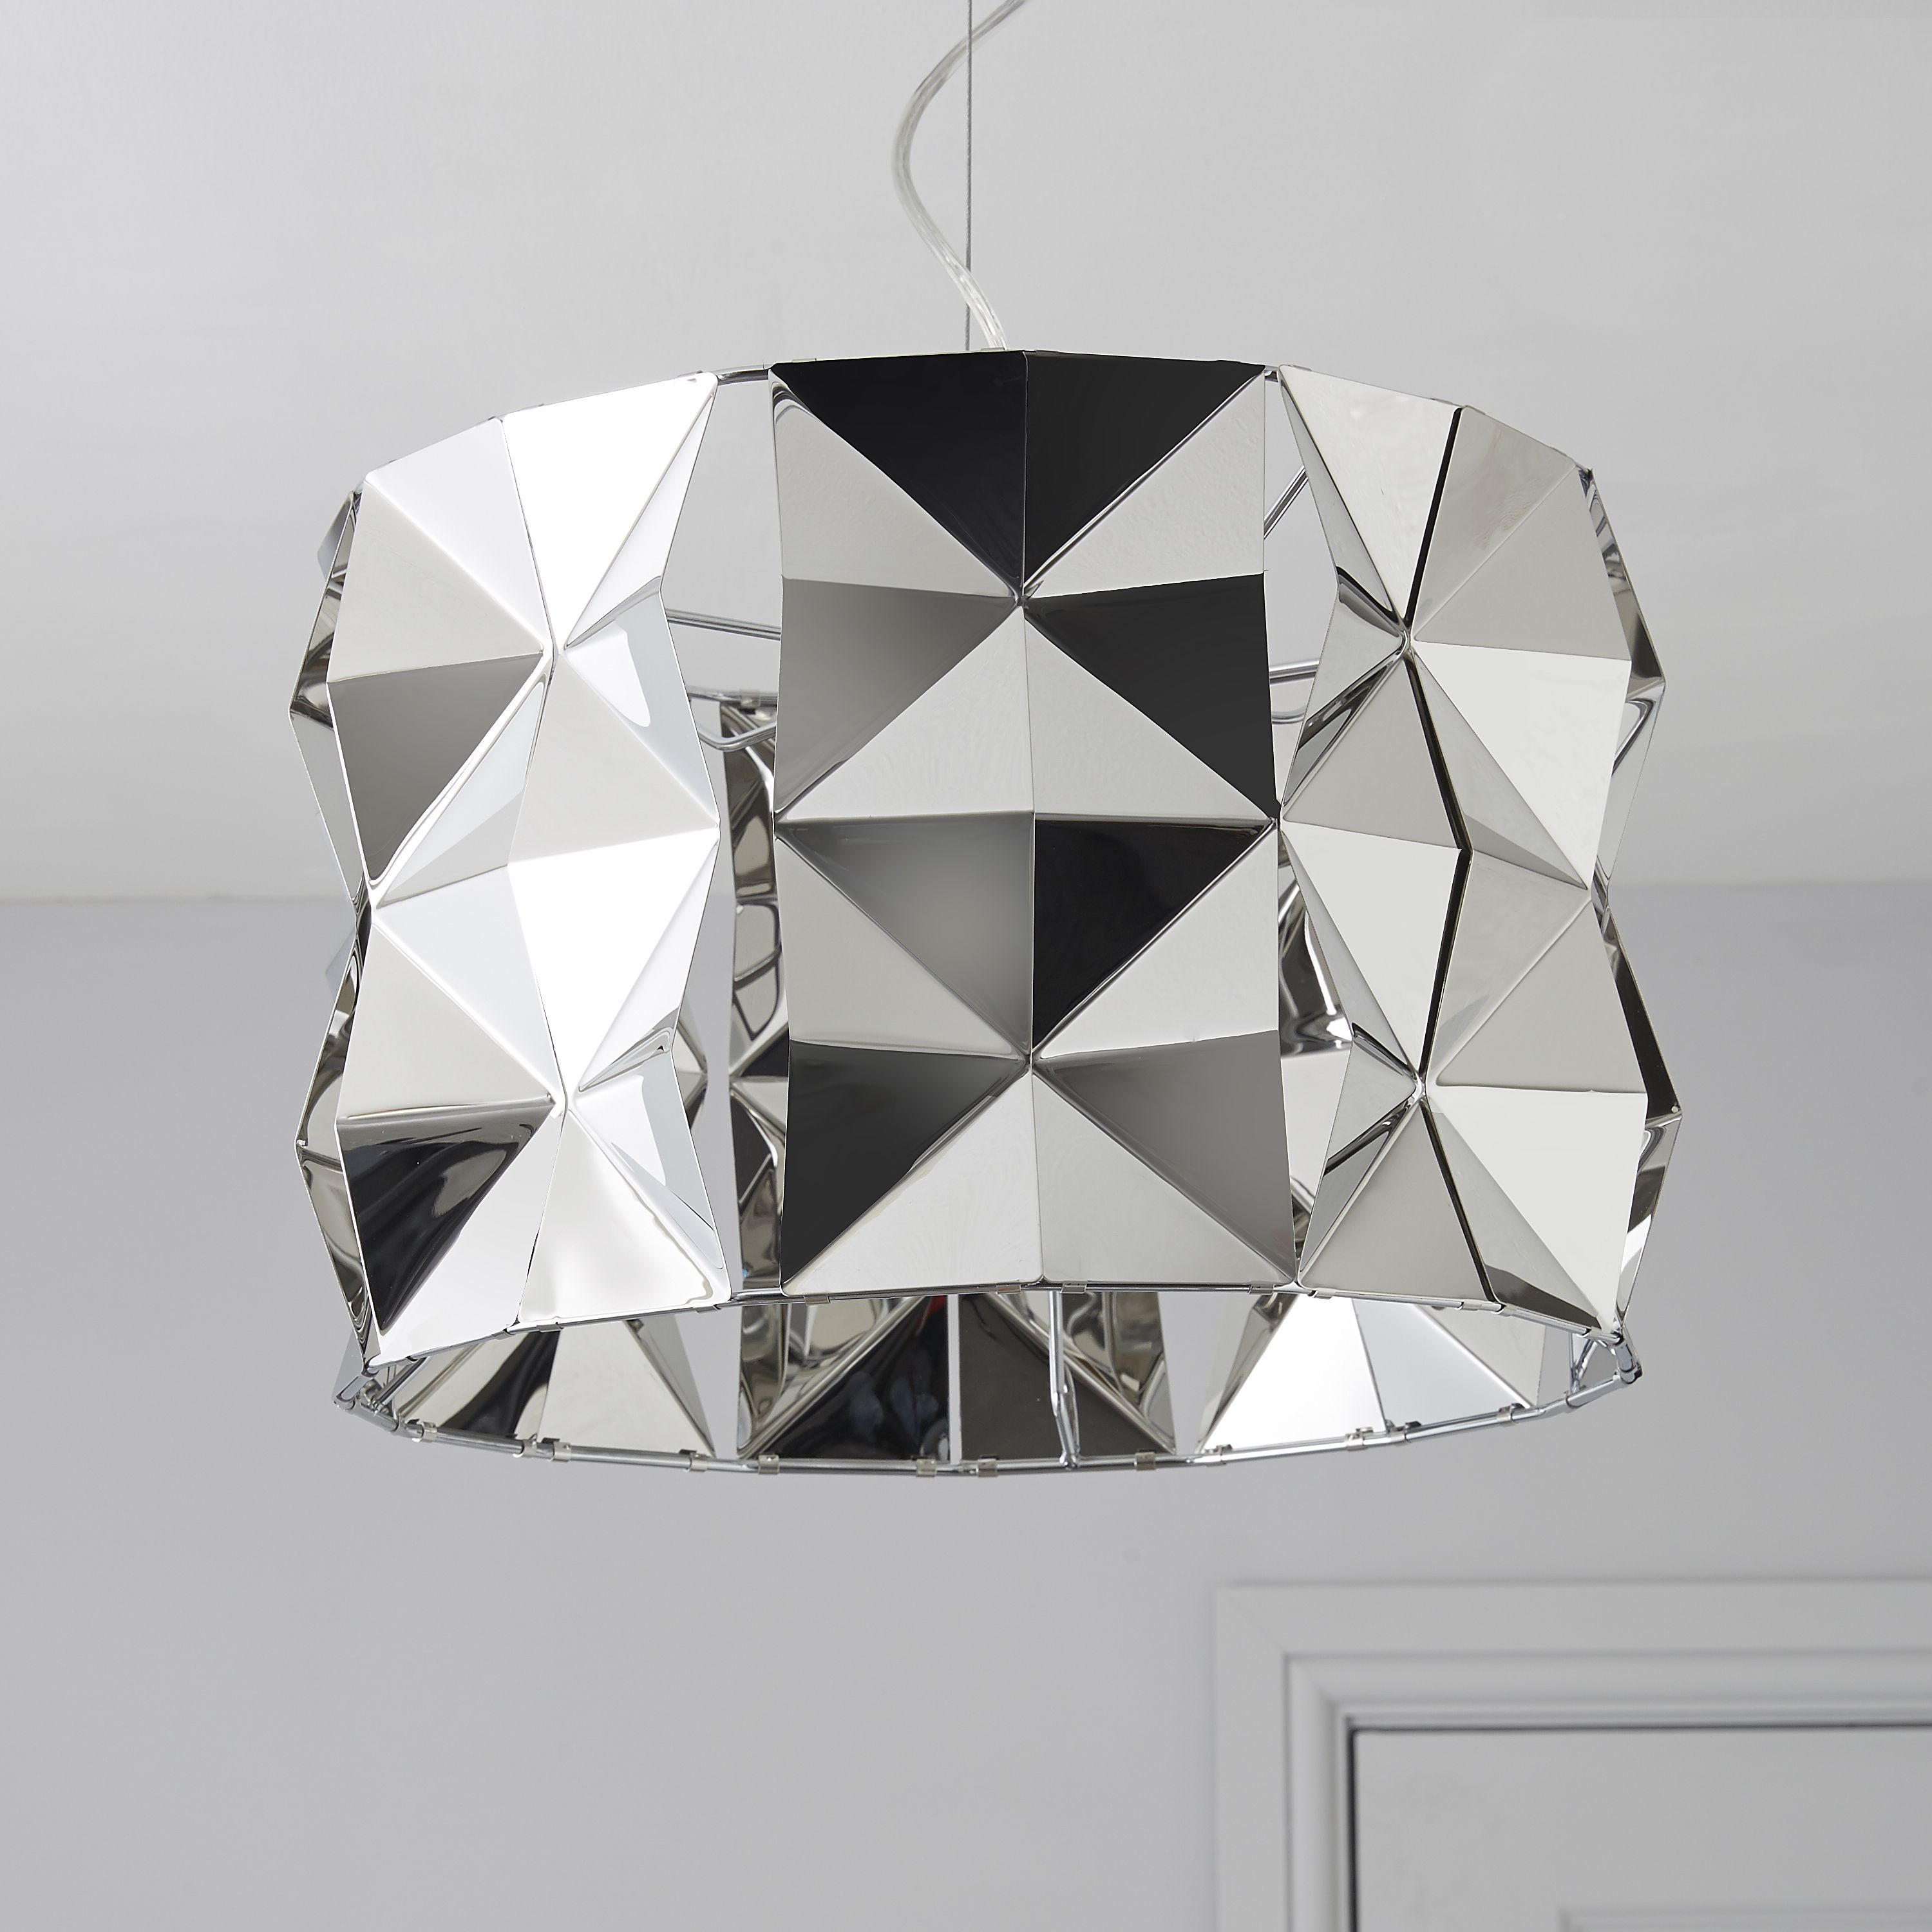 light starburst modern home archive of contemporary blog pendant lighting decor height ceiling overall